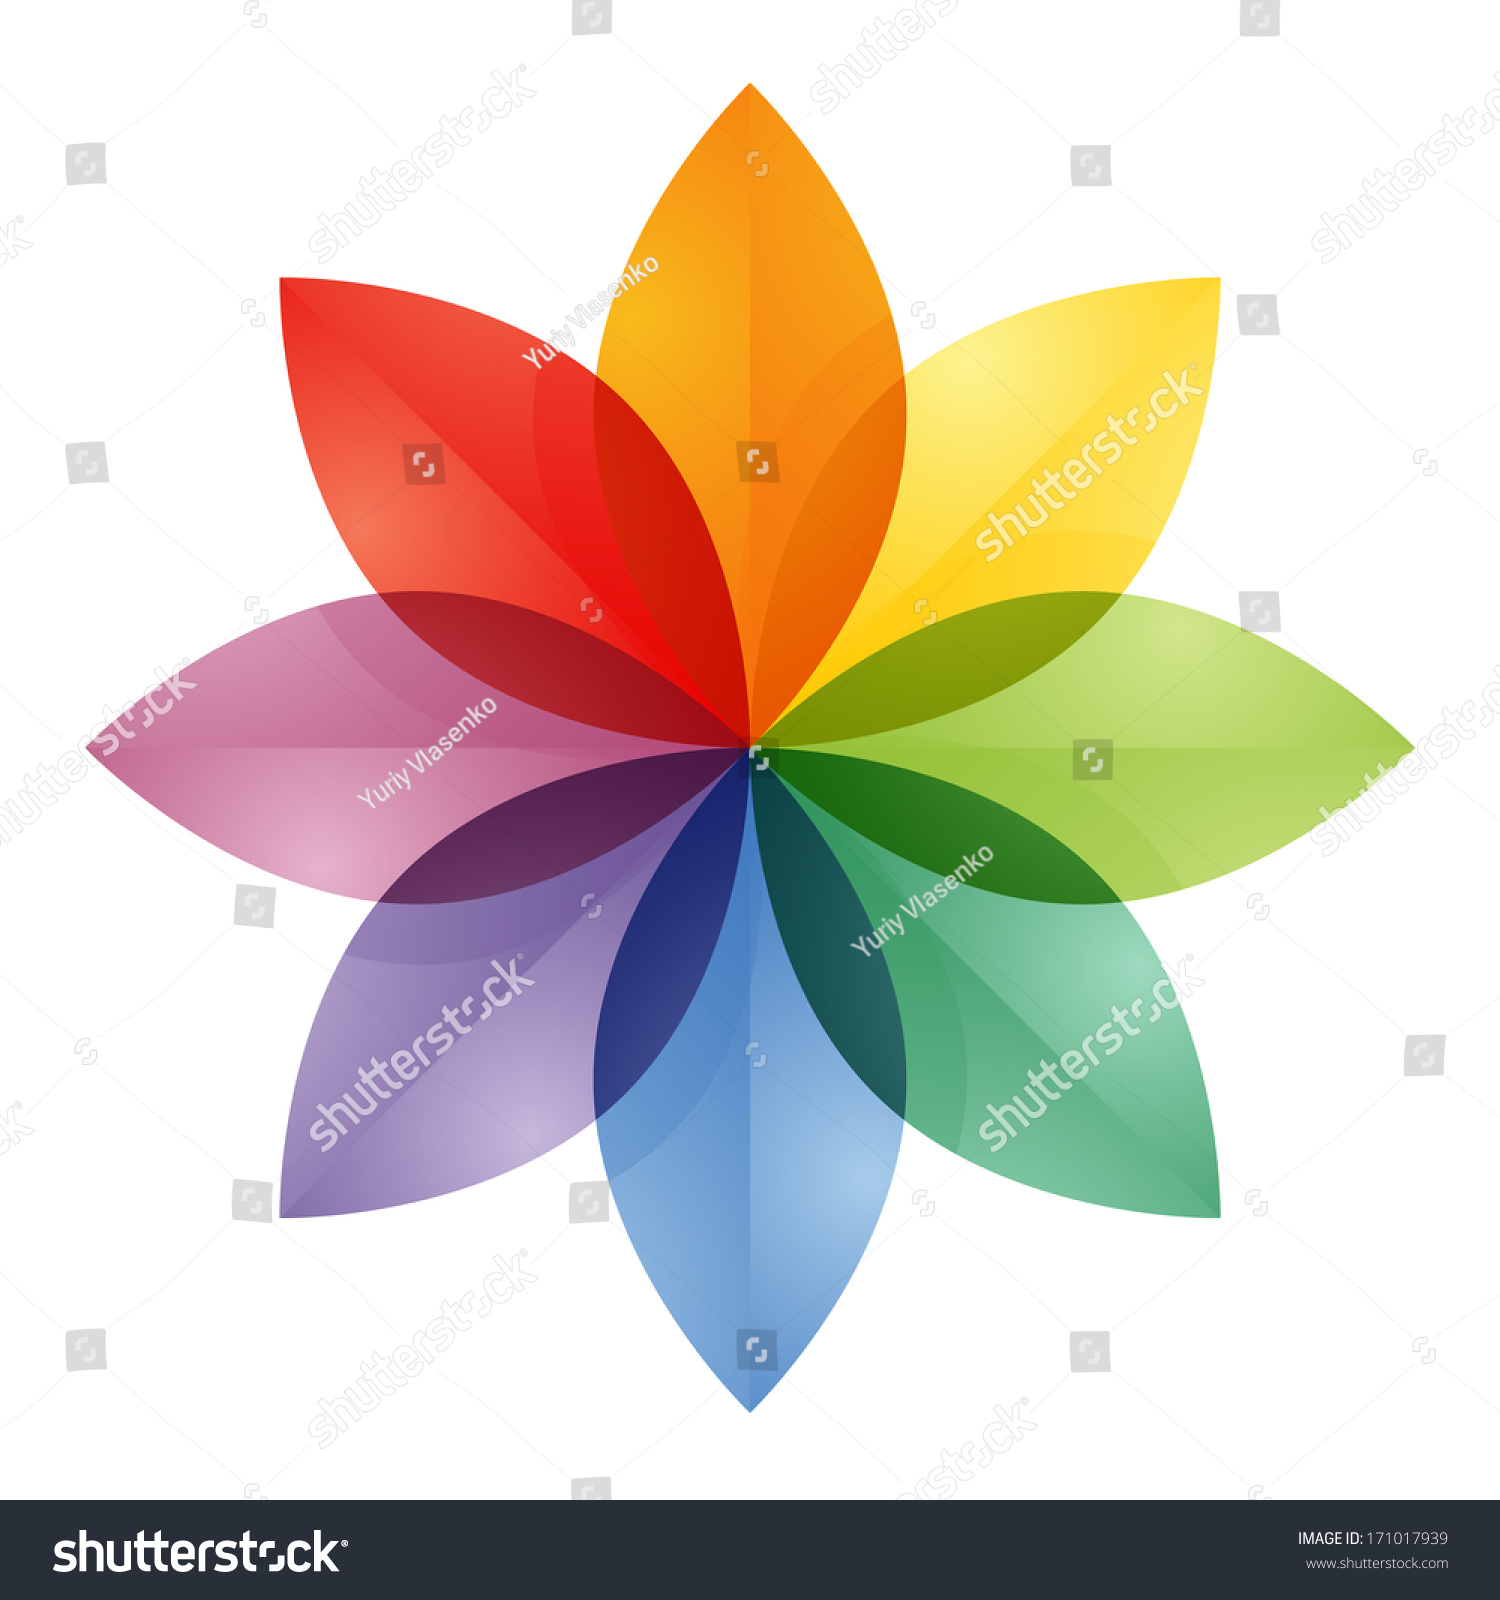 Color Wheel Flower Stock Illustration 171017939